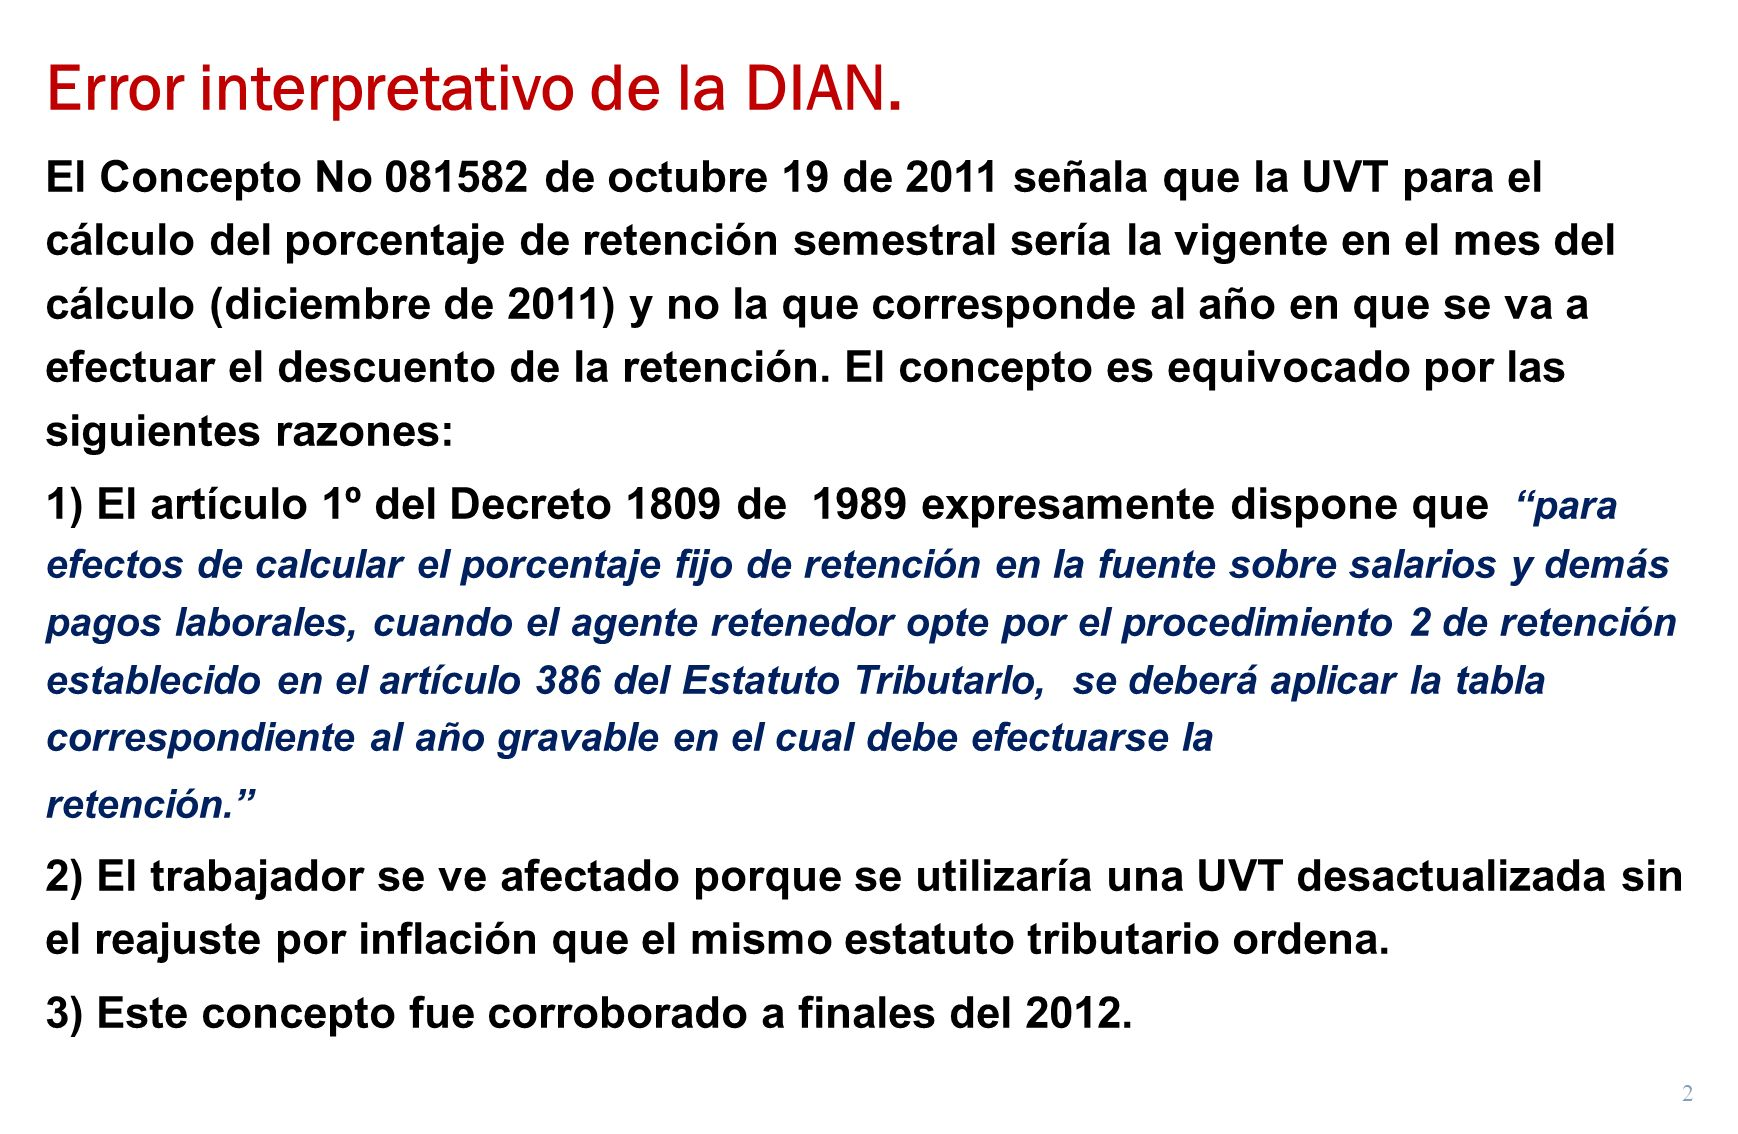 Error interpretativo de la DIAN.